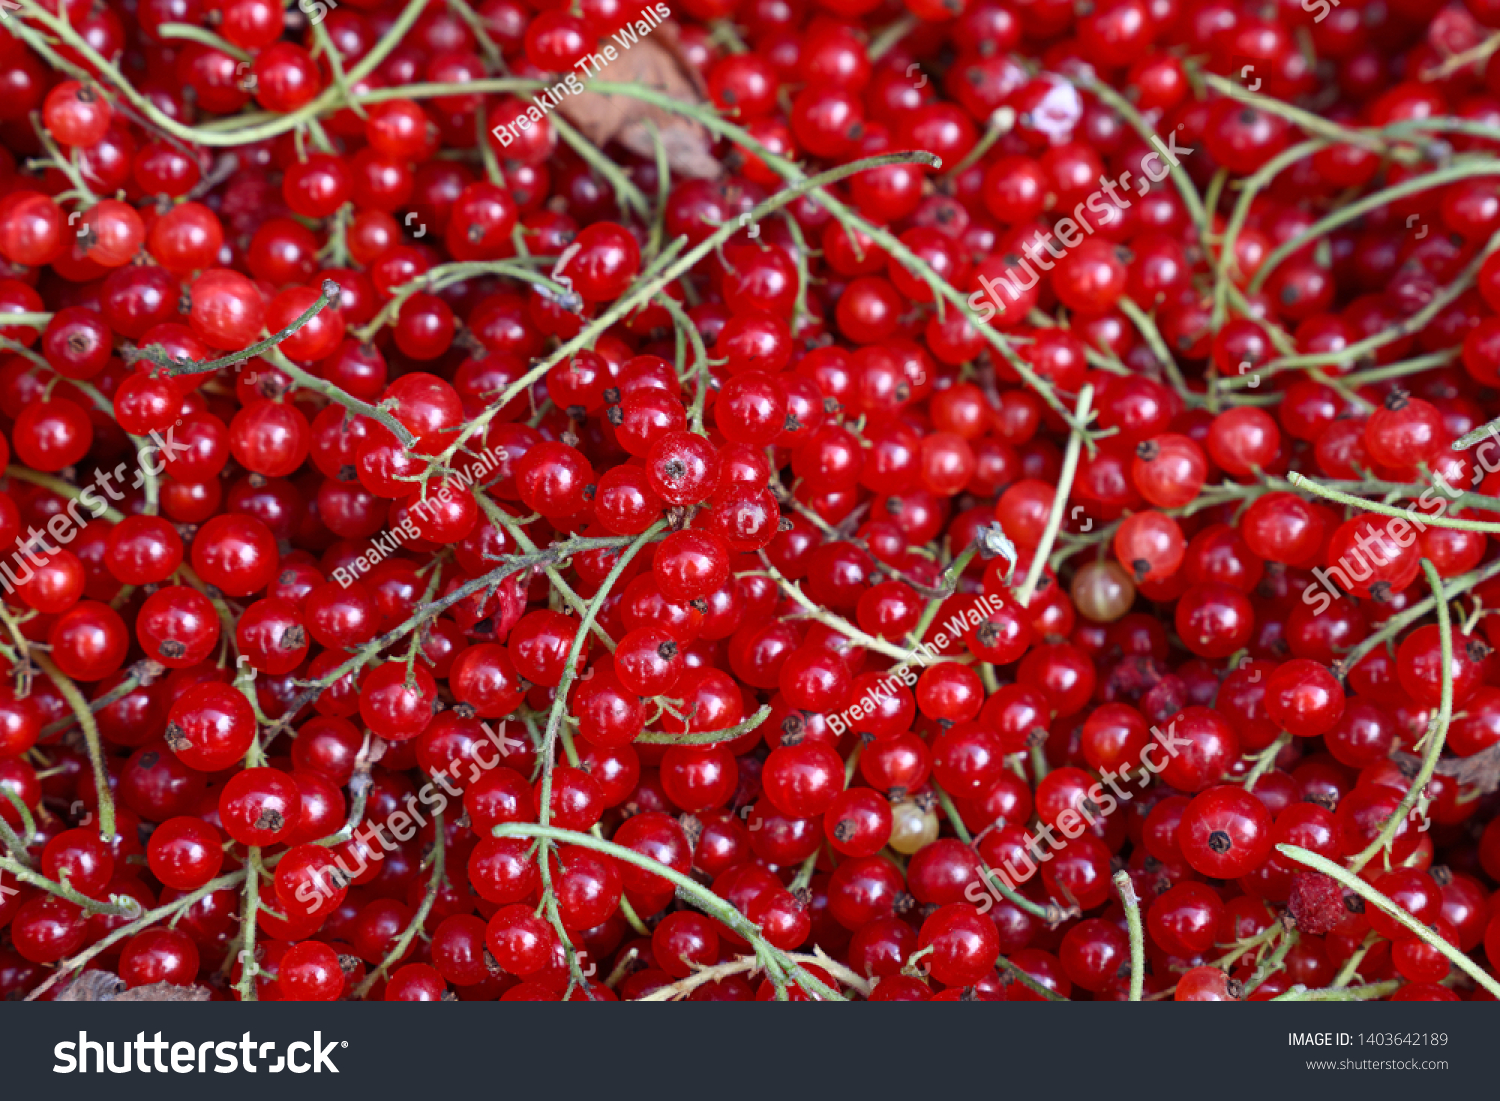 Close up heap of fresh redcurrant berries on retail display of farmers market, elevated high angle view #1403642189